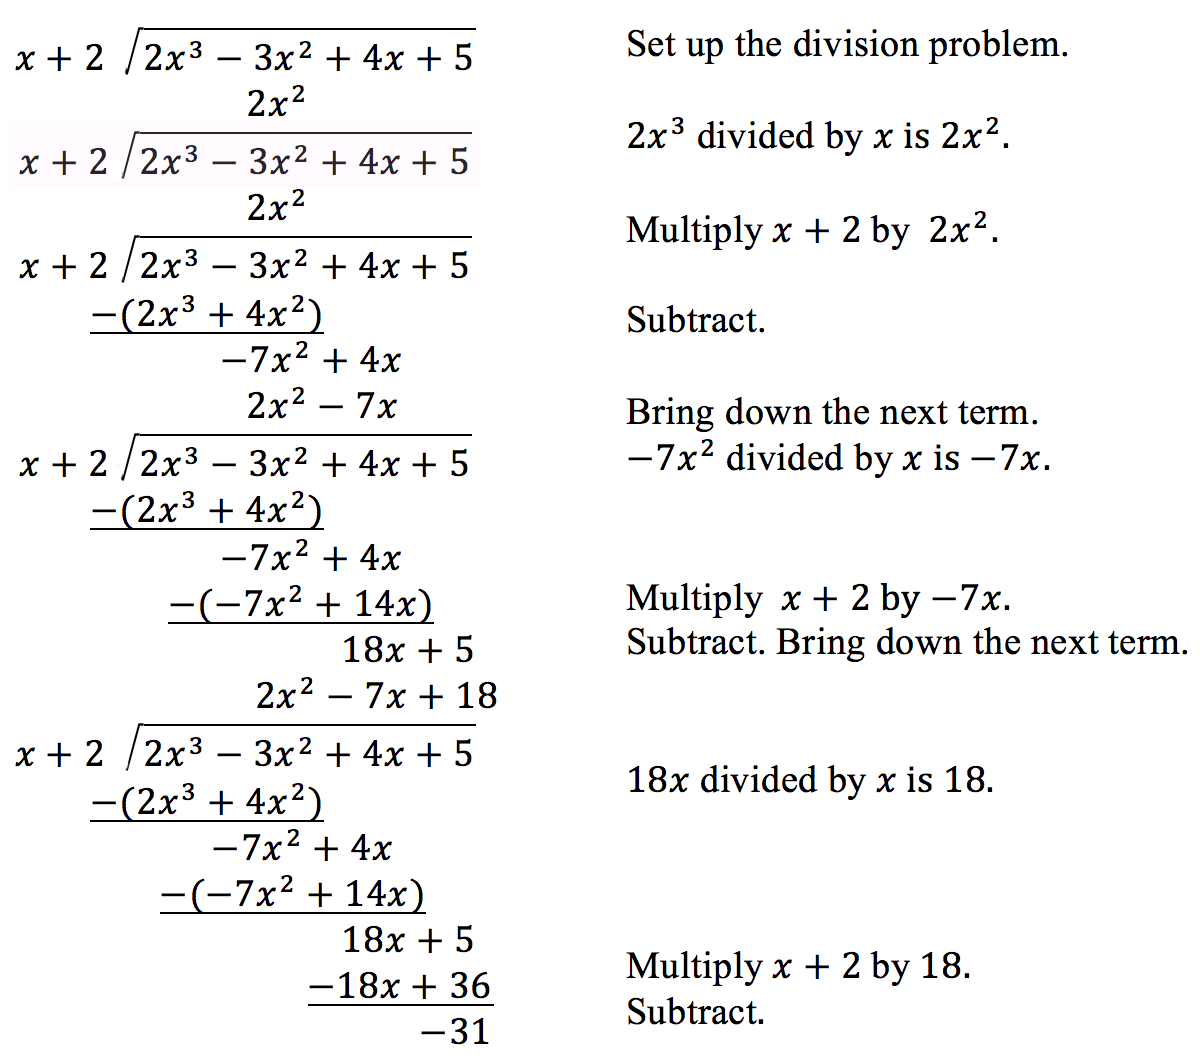 worksheet Long Division Problems use long division to divide polynomials precalculus i set up the problem 2x cubed divided by x is squared multiply